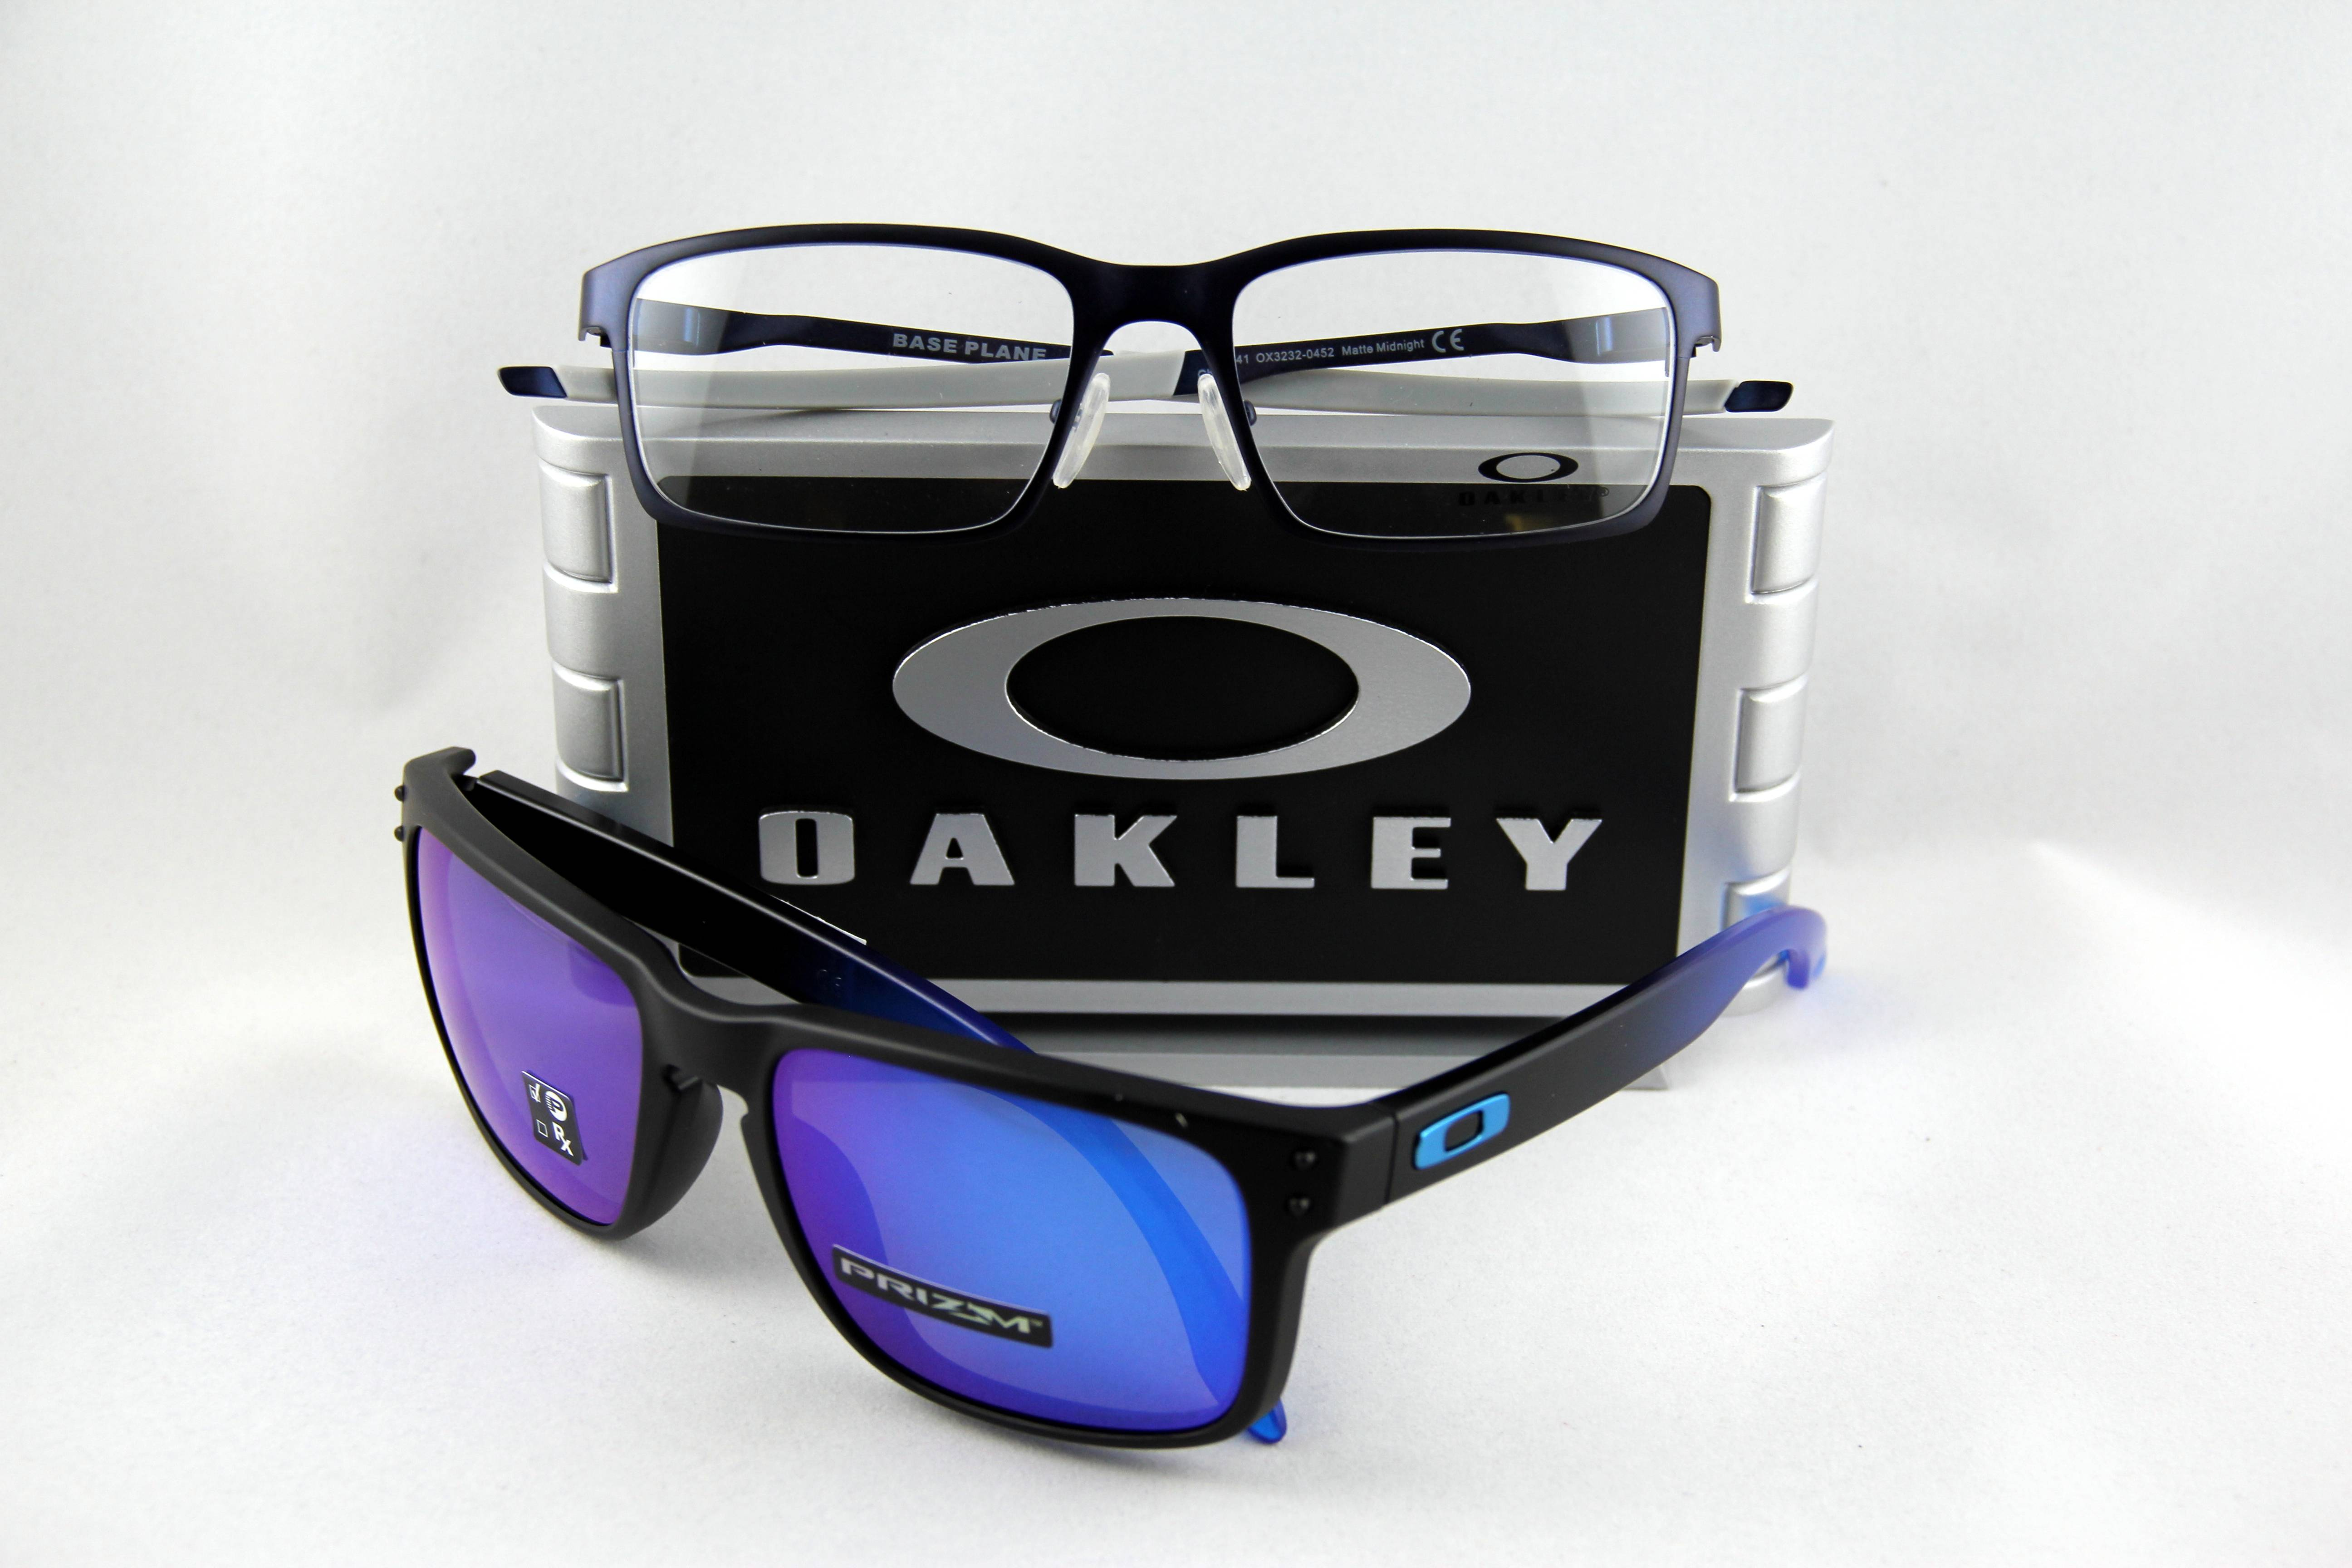 Oakley-2-edited